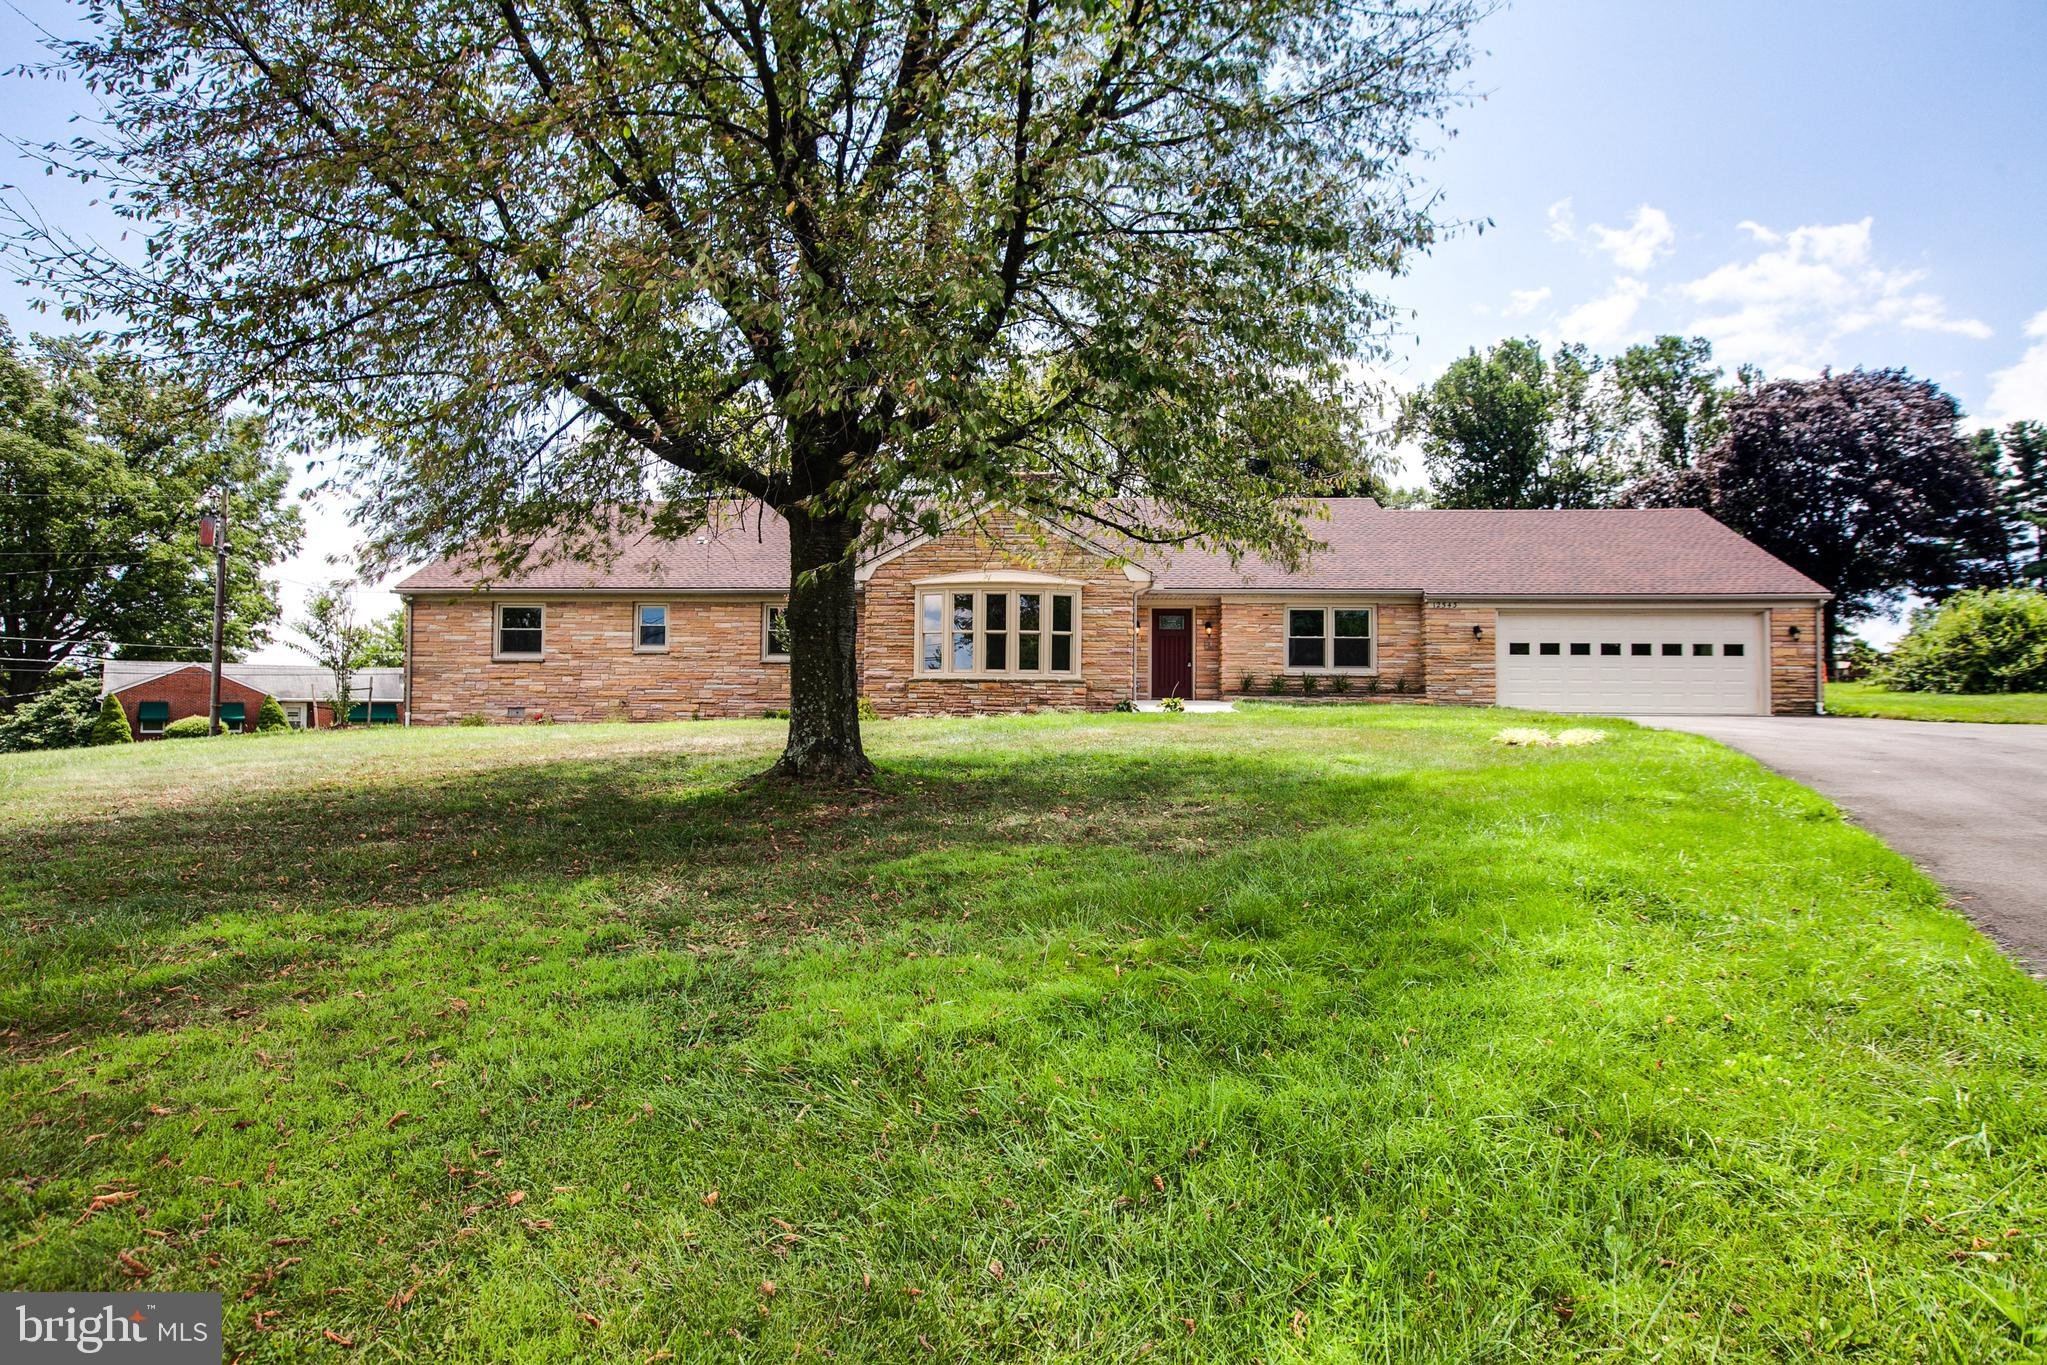 12543 NATIONAL PIKE, CLEAR SPRING, MD 21722